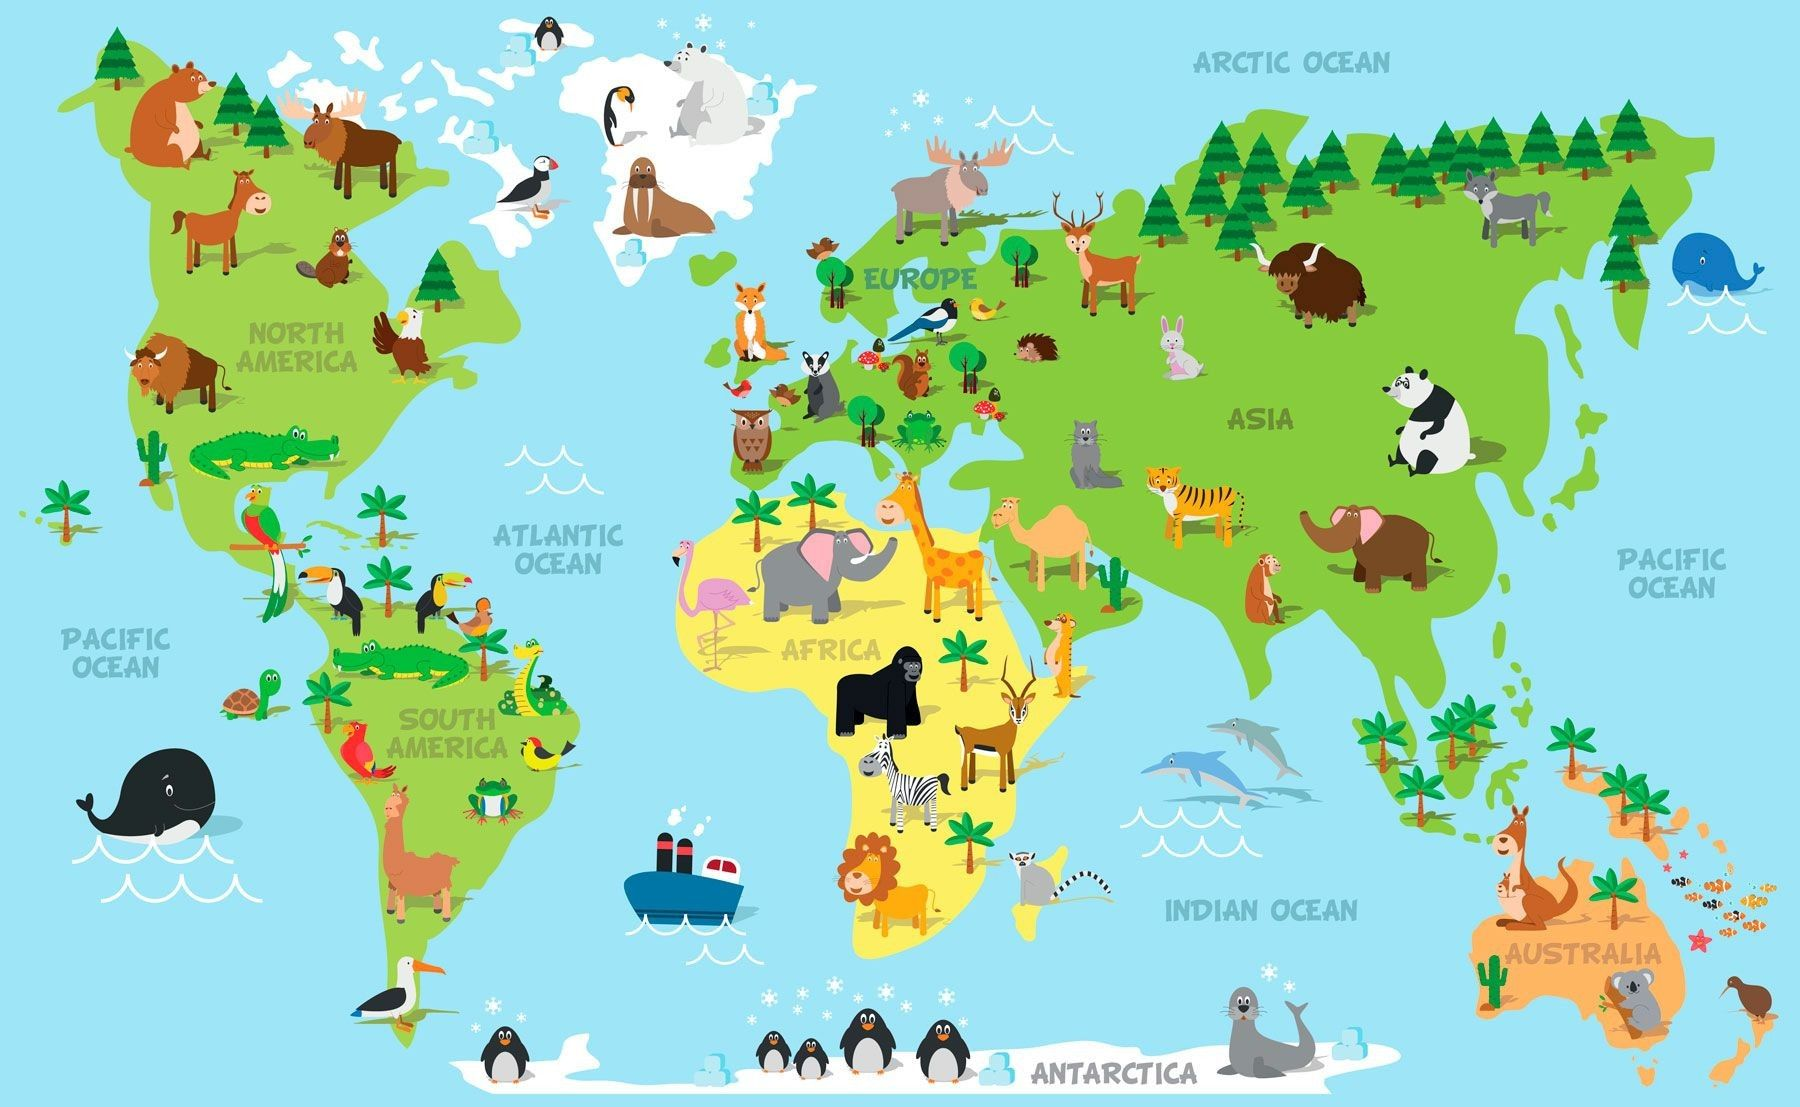 World Map With Continent Names And Ocean Names New Funny